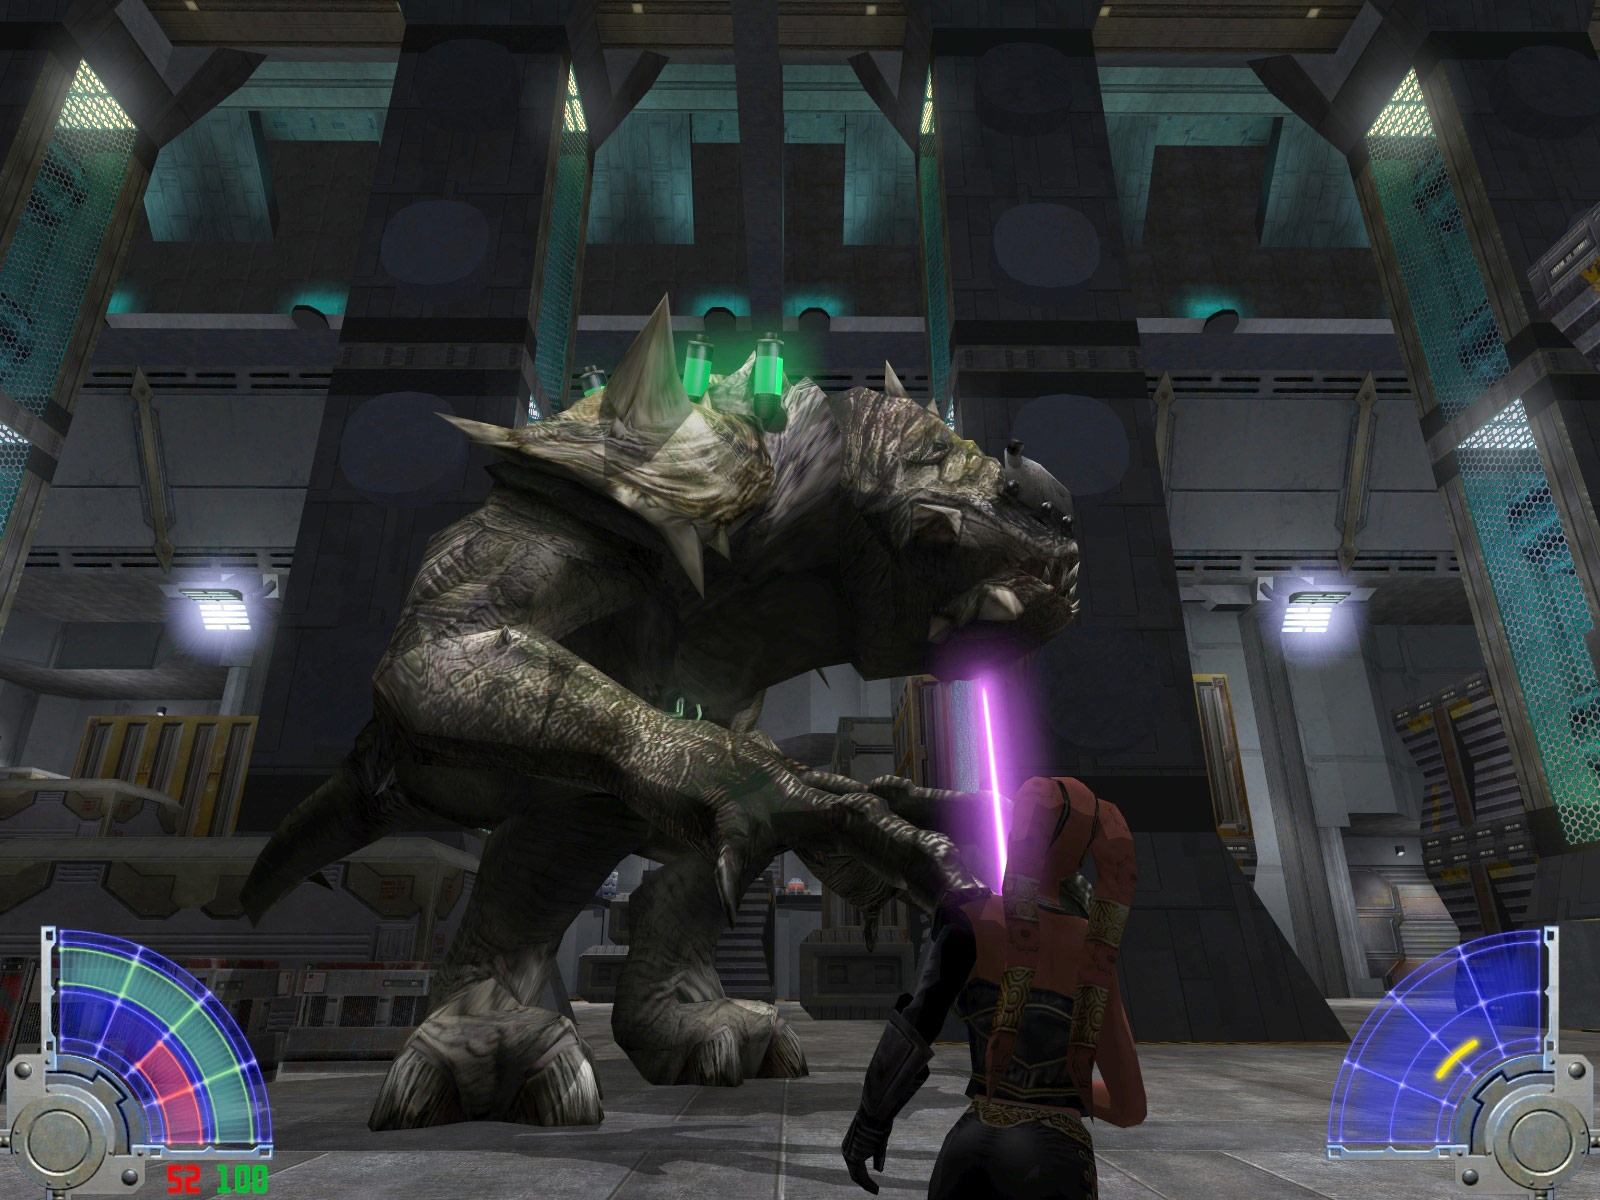 STAR WARS Jedi Knight - Jedi Academy screenshot